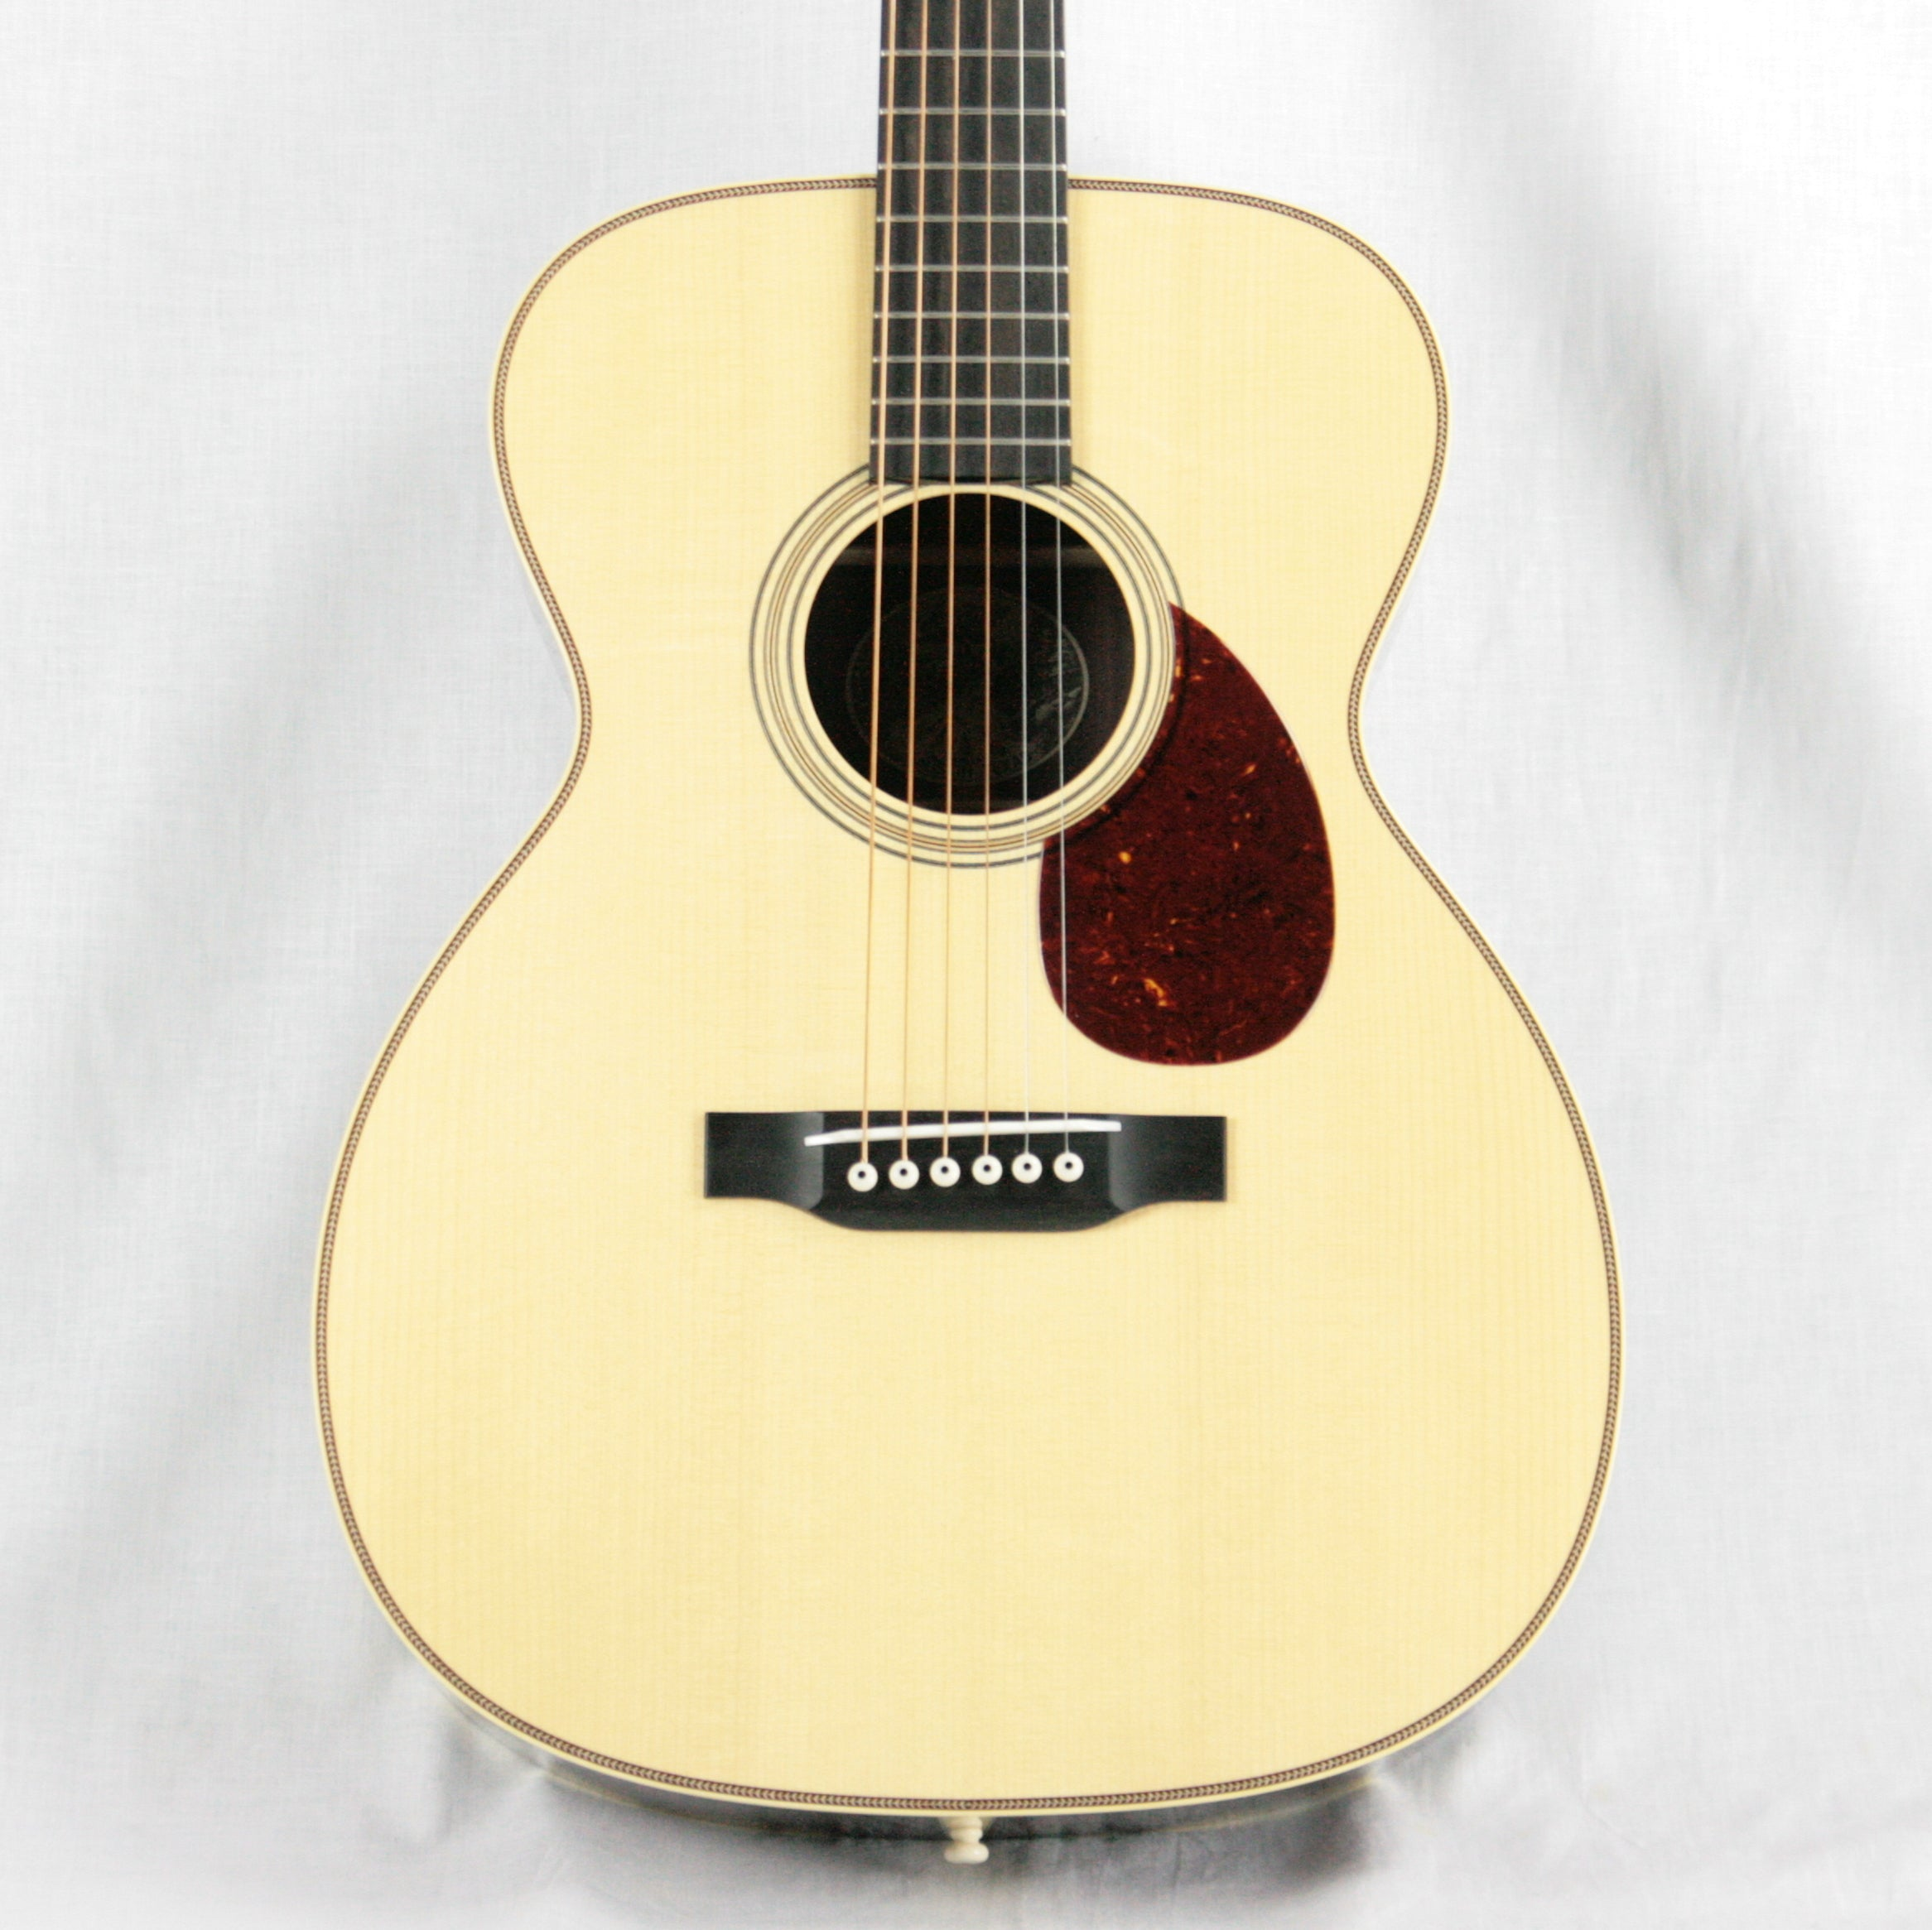 MINT 2018 Collings OM2H A-T Adirondack Spruce Traditional T! Rosewood OM